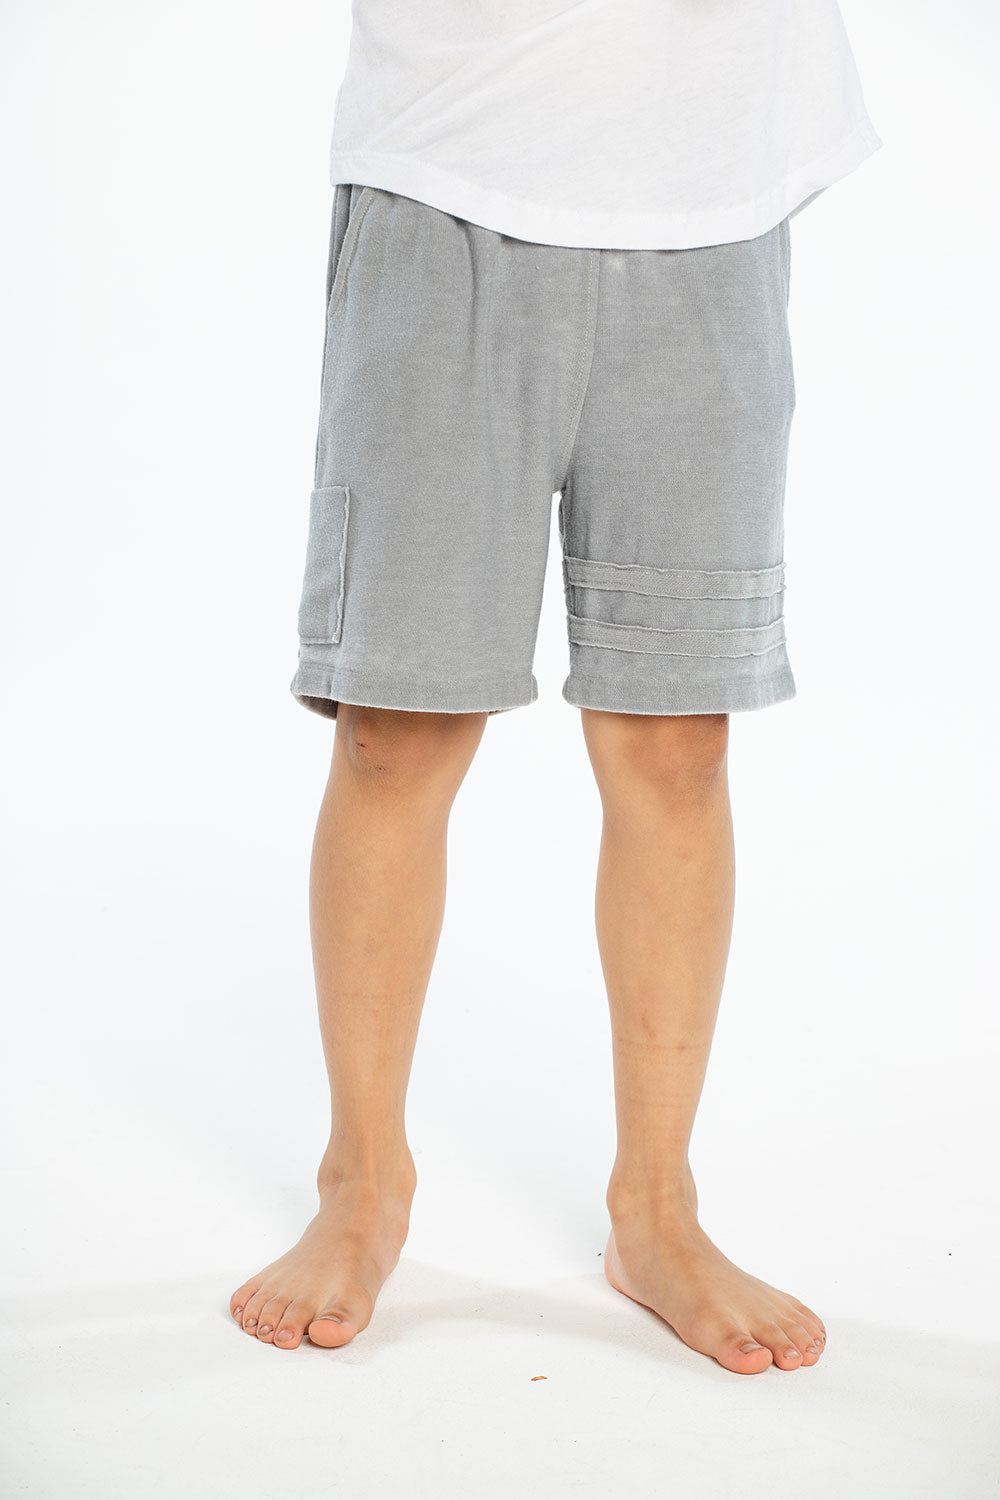 Cozy Knit Cargo Shorts W/ Strappings, BOYS, chaserbrand.com,chaser clothing,chaser apparel,chaser los angeles